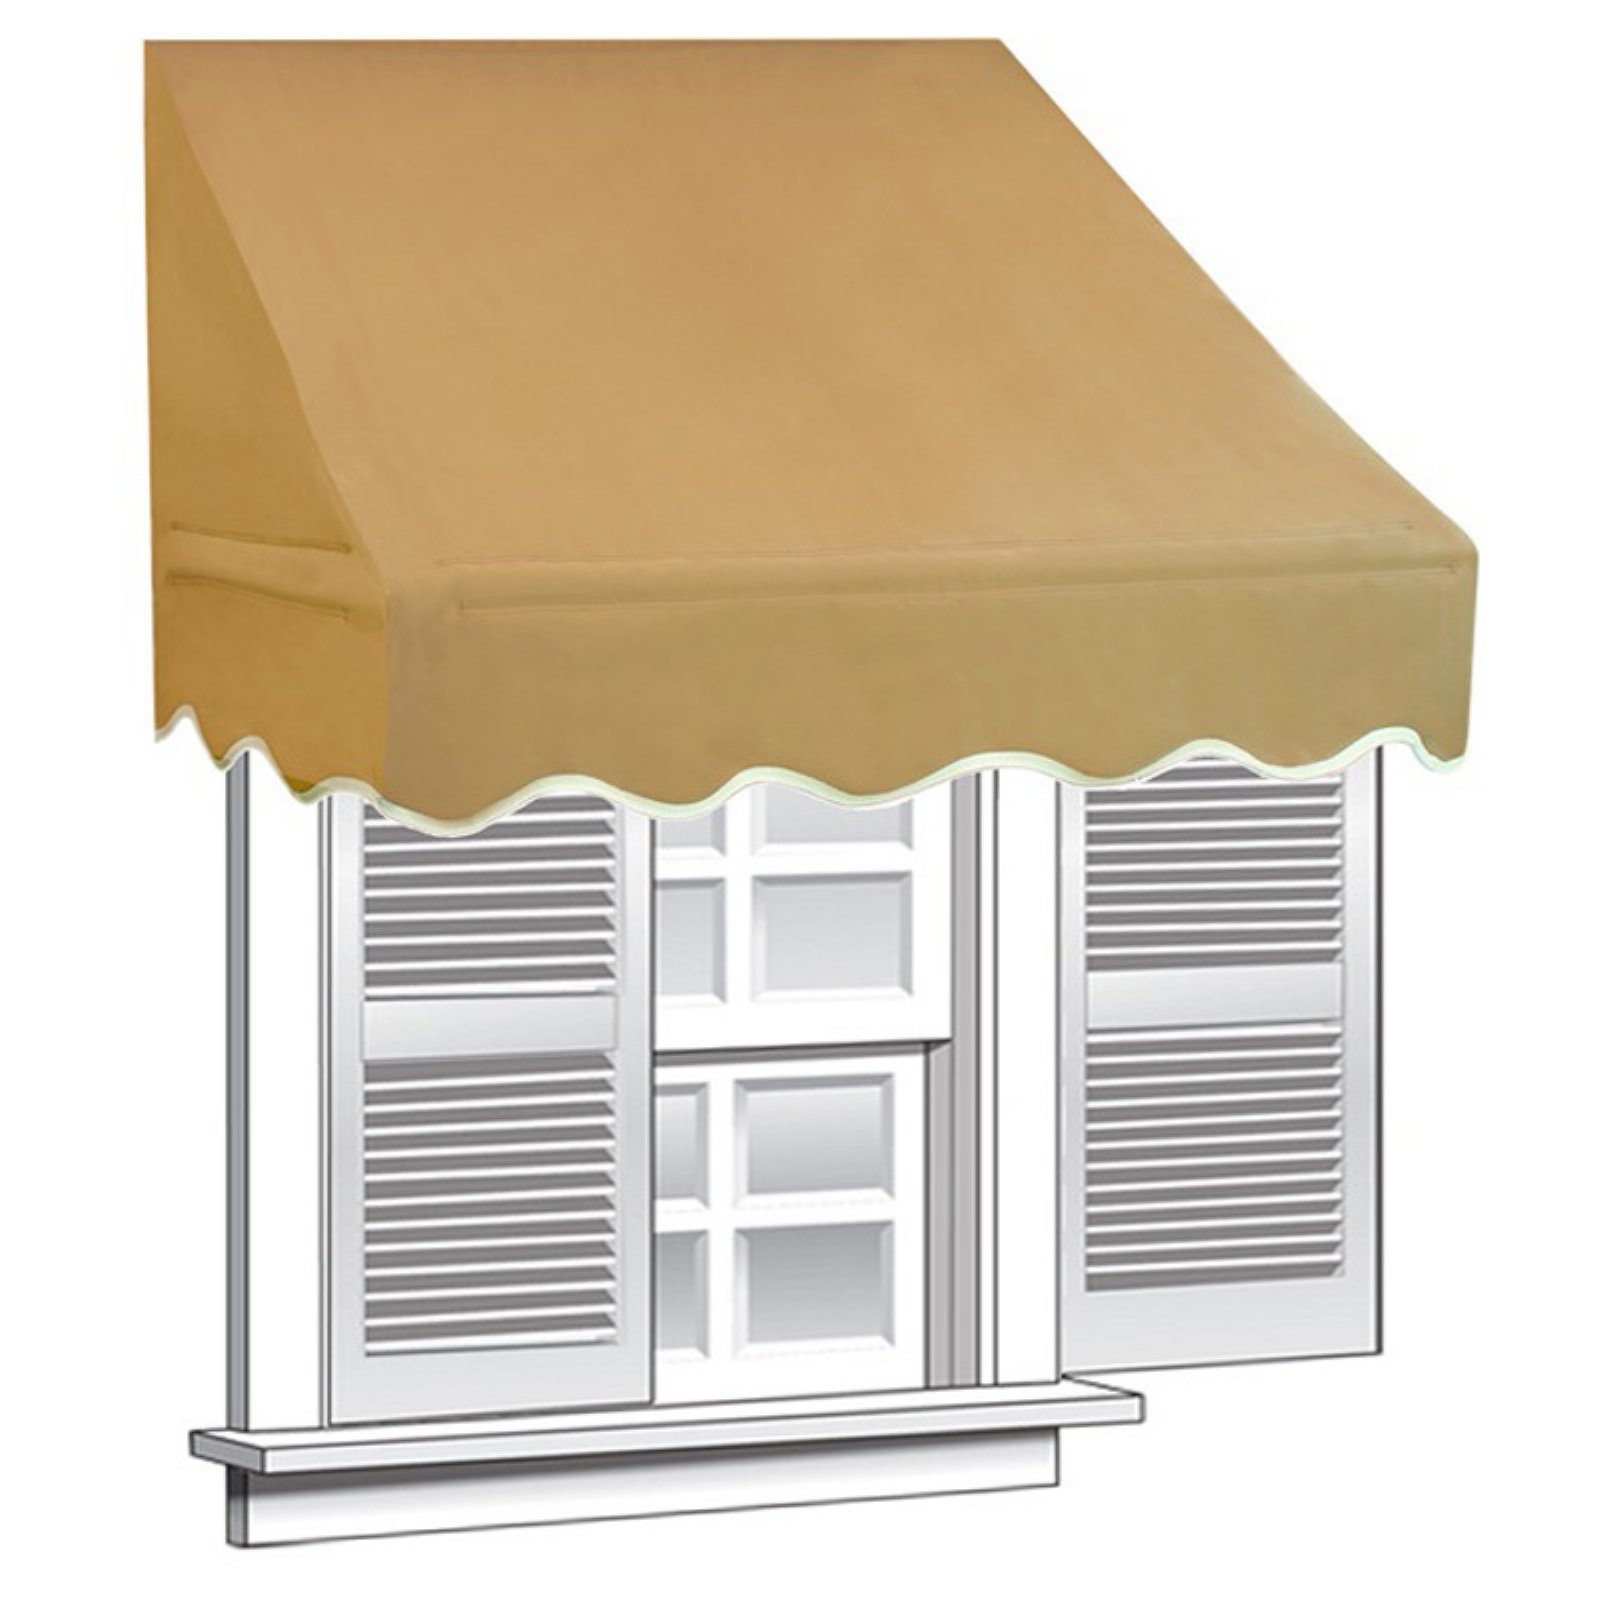 Window Canopy Aleko 6 X 2 Window Awning Door Canopy 12 Sq Ft Coverage